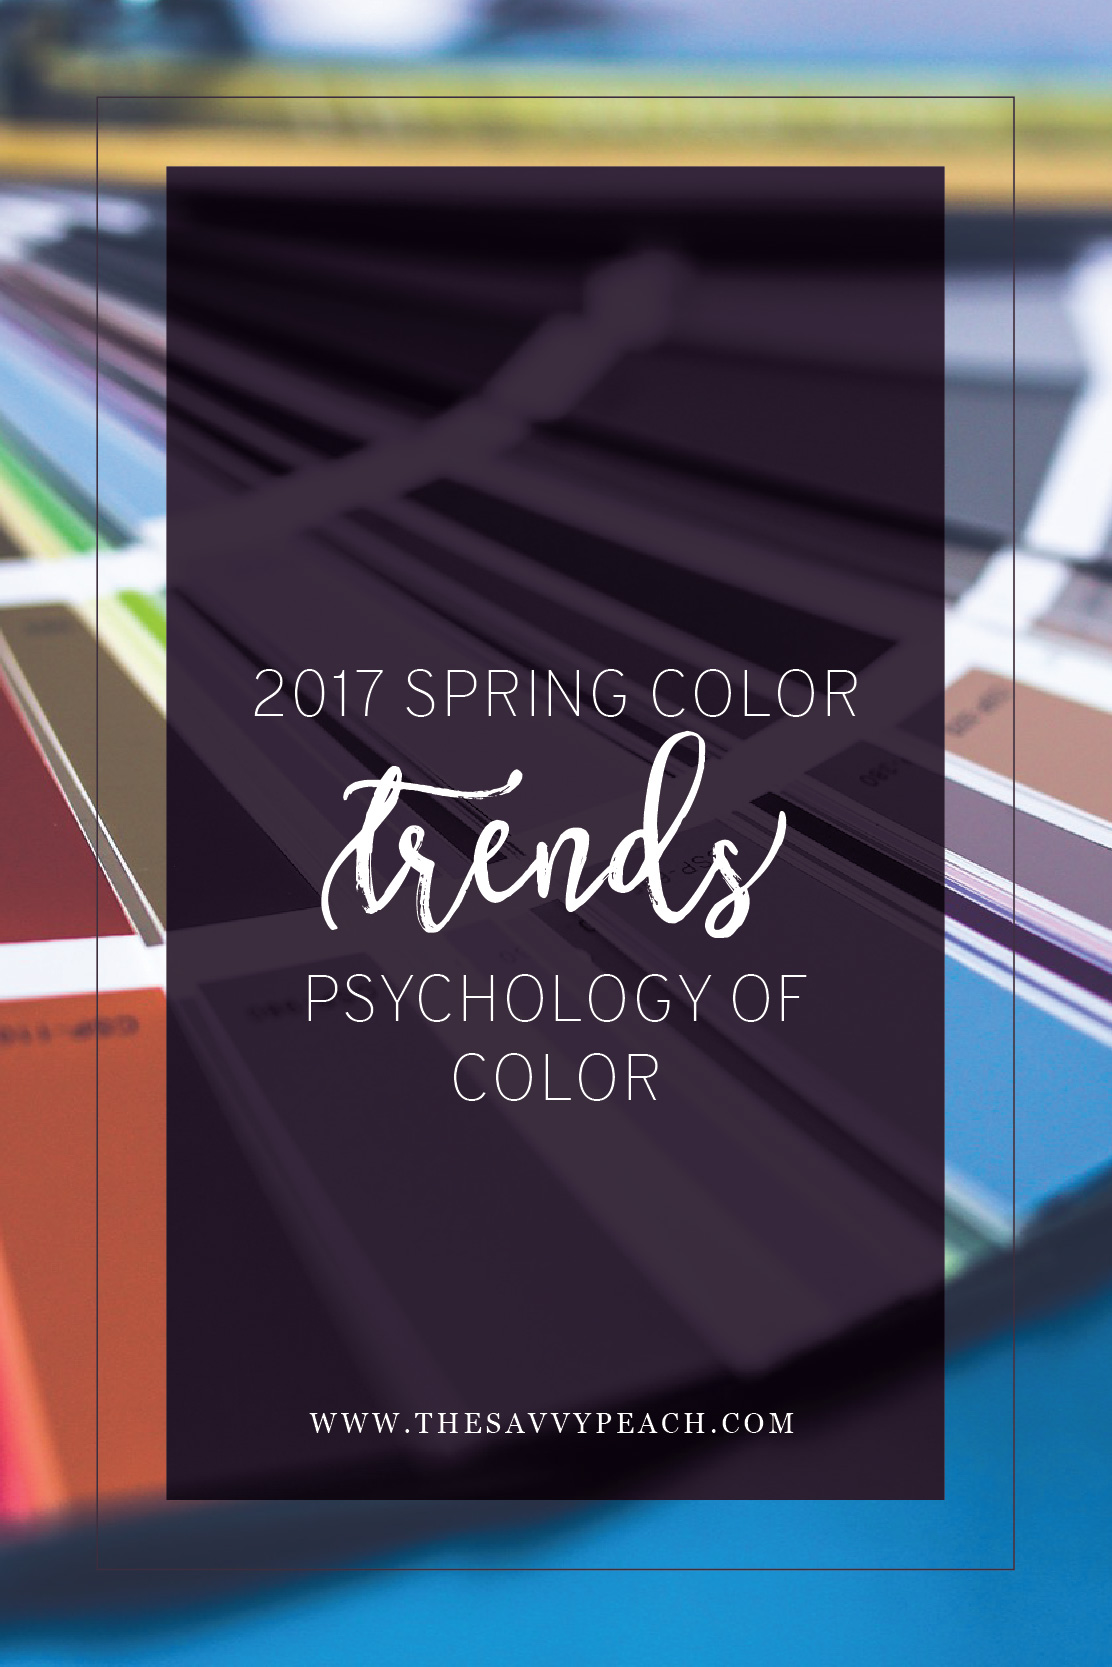 2017 Spring Color Trends